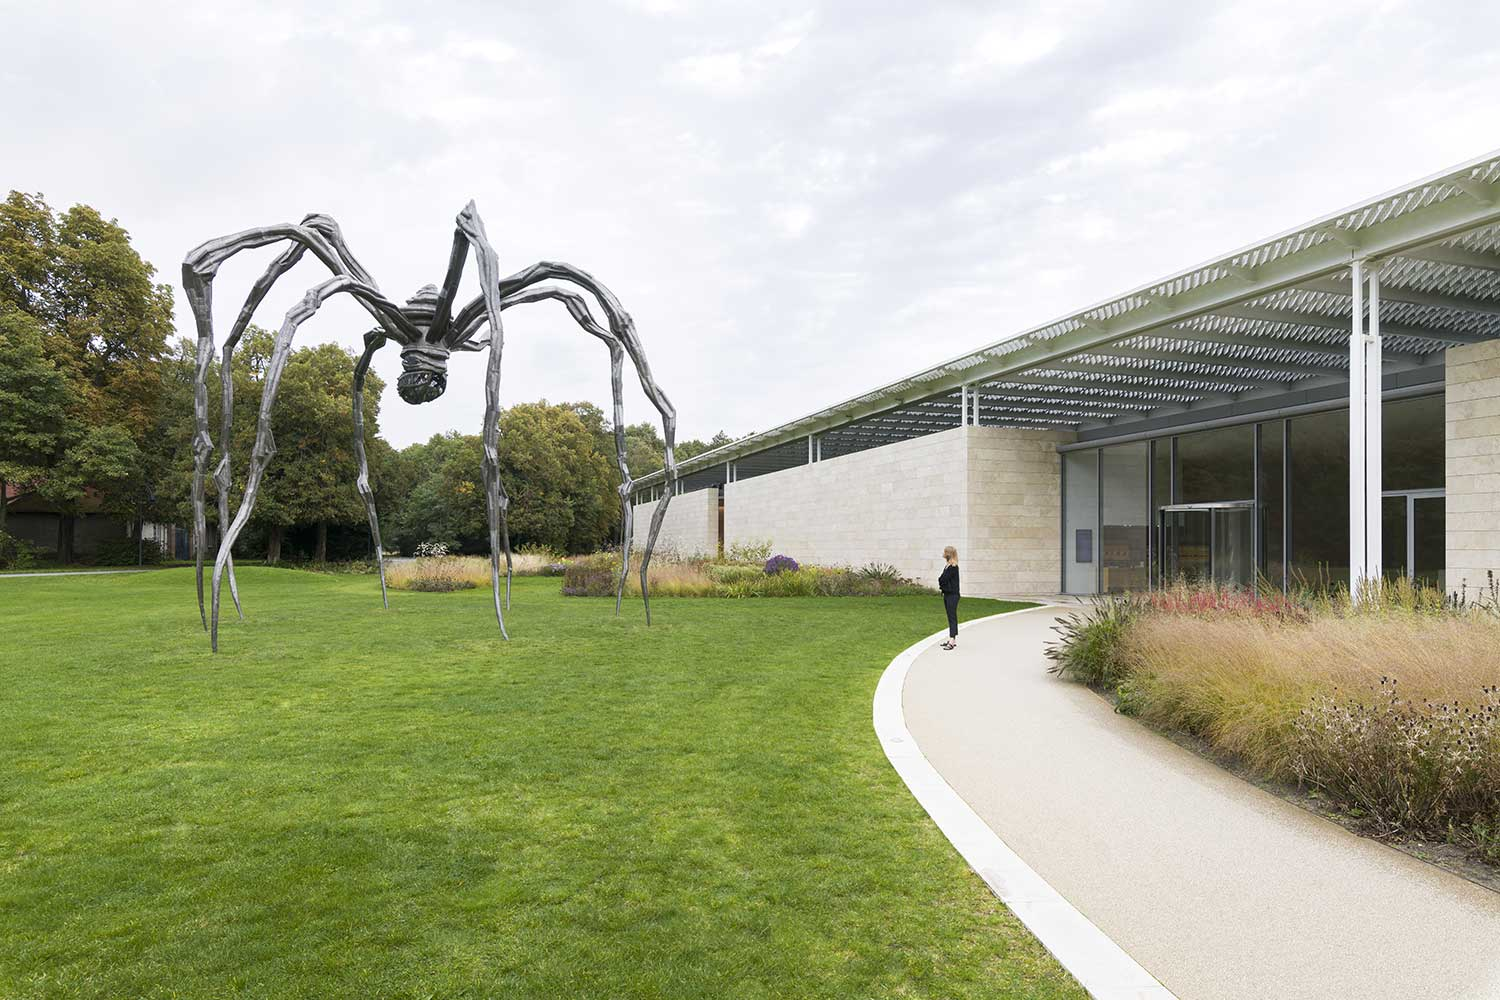 Louise Bourgeois – To Unravel a Torment